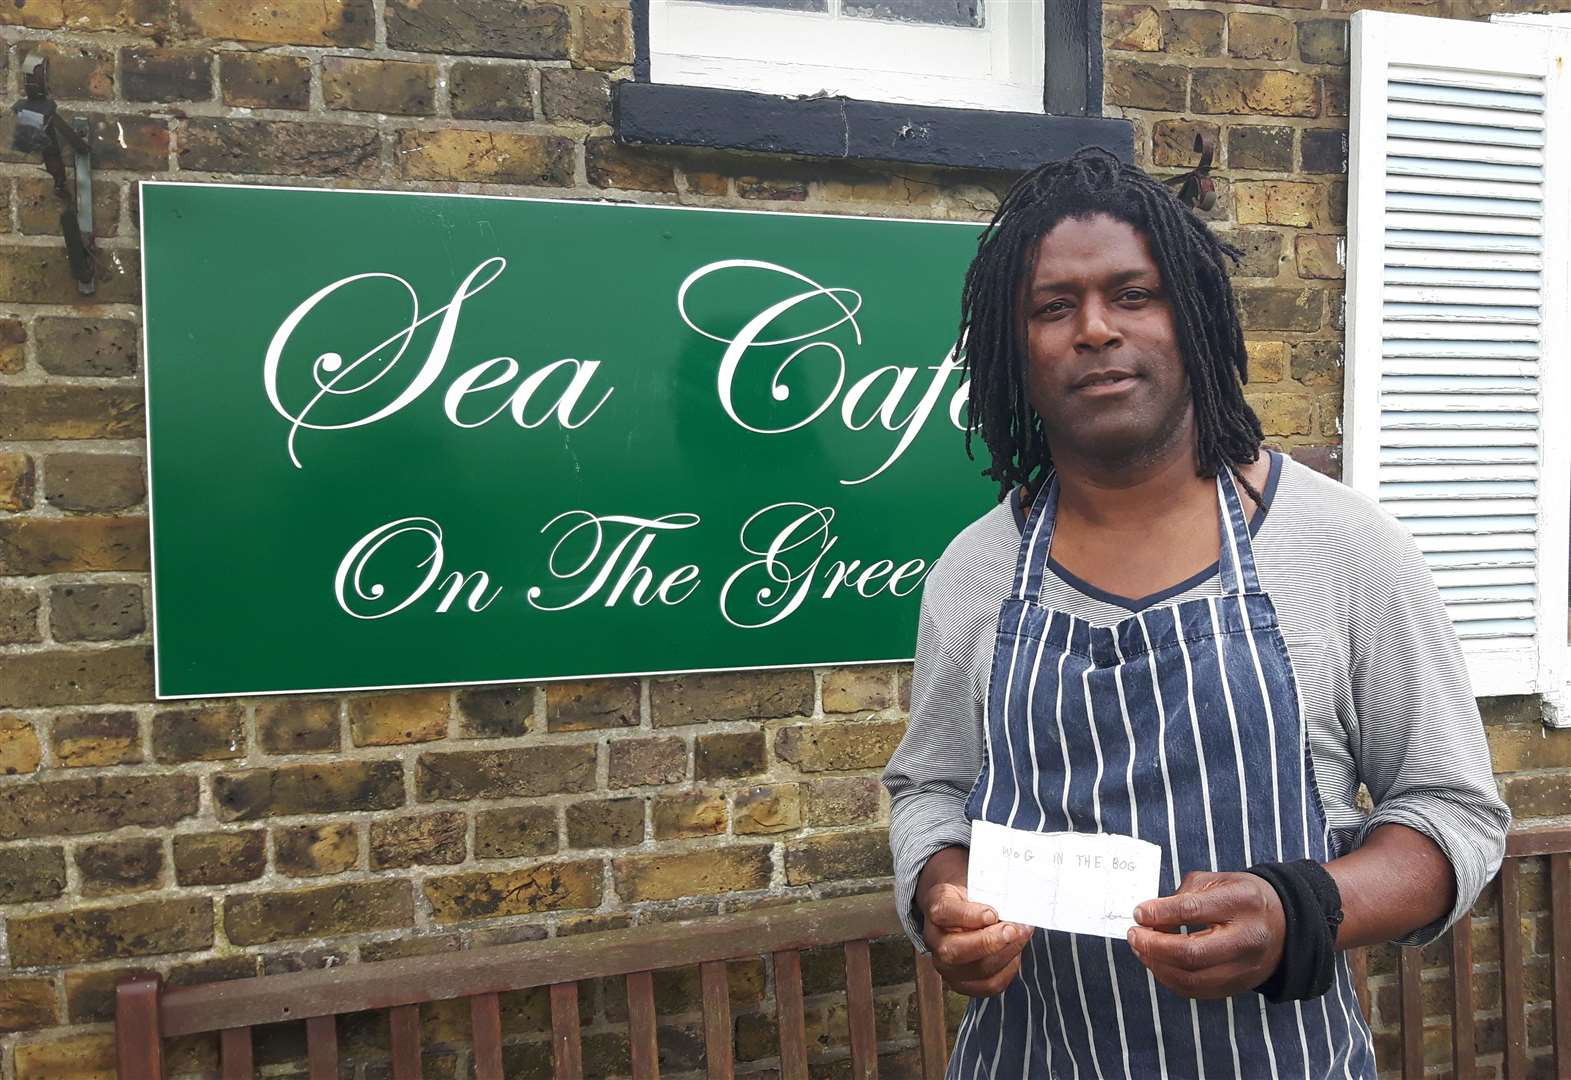 Café owner to frame and display racist note